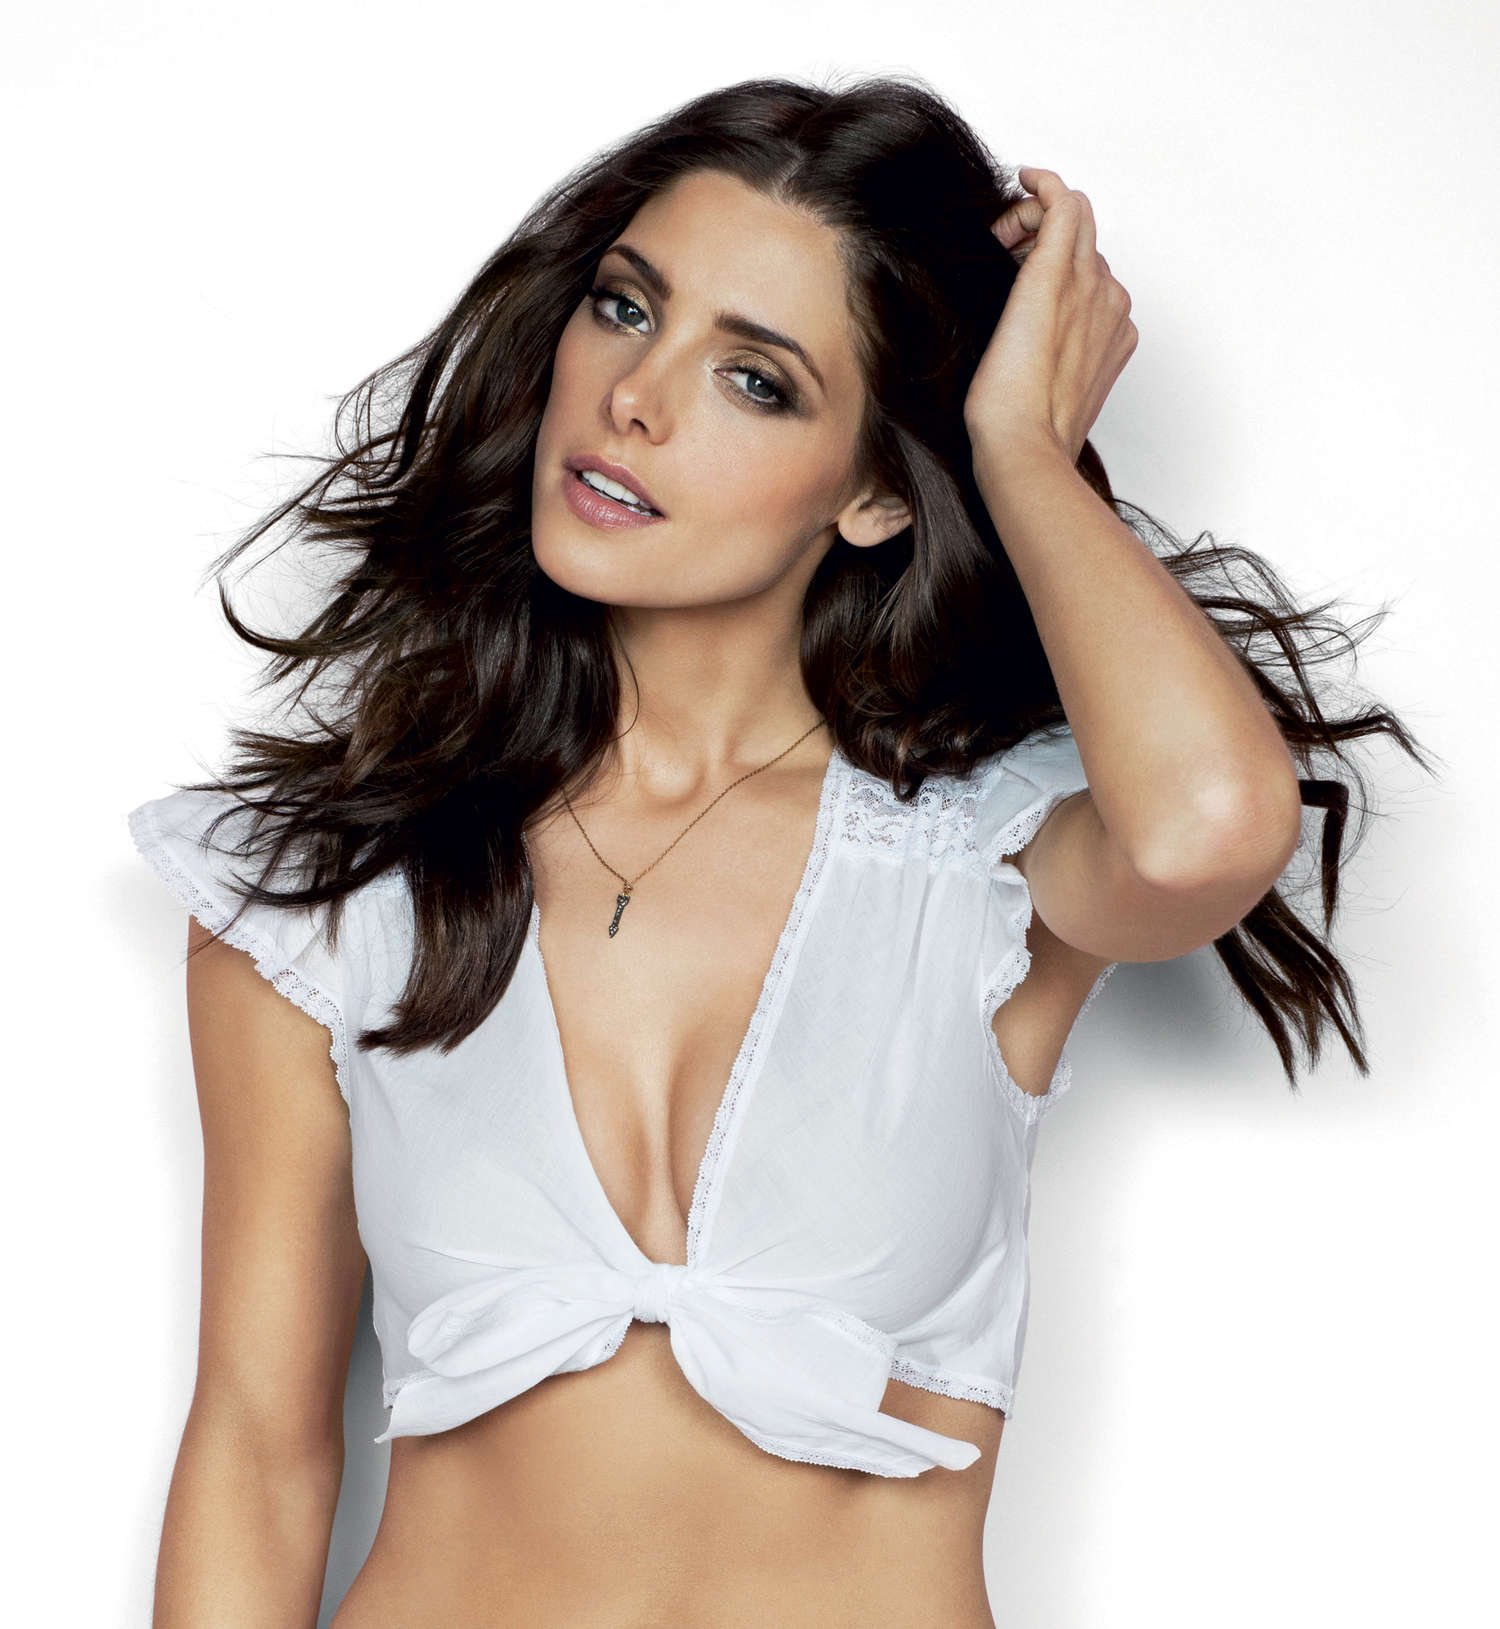 ashley-greene-cosmopolitan-photoshoot-01